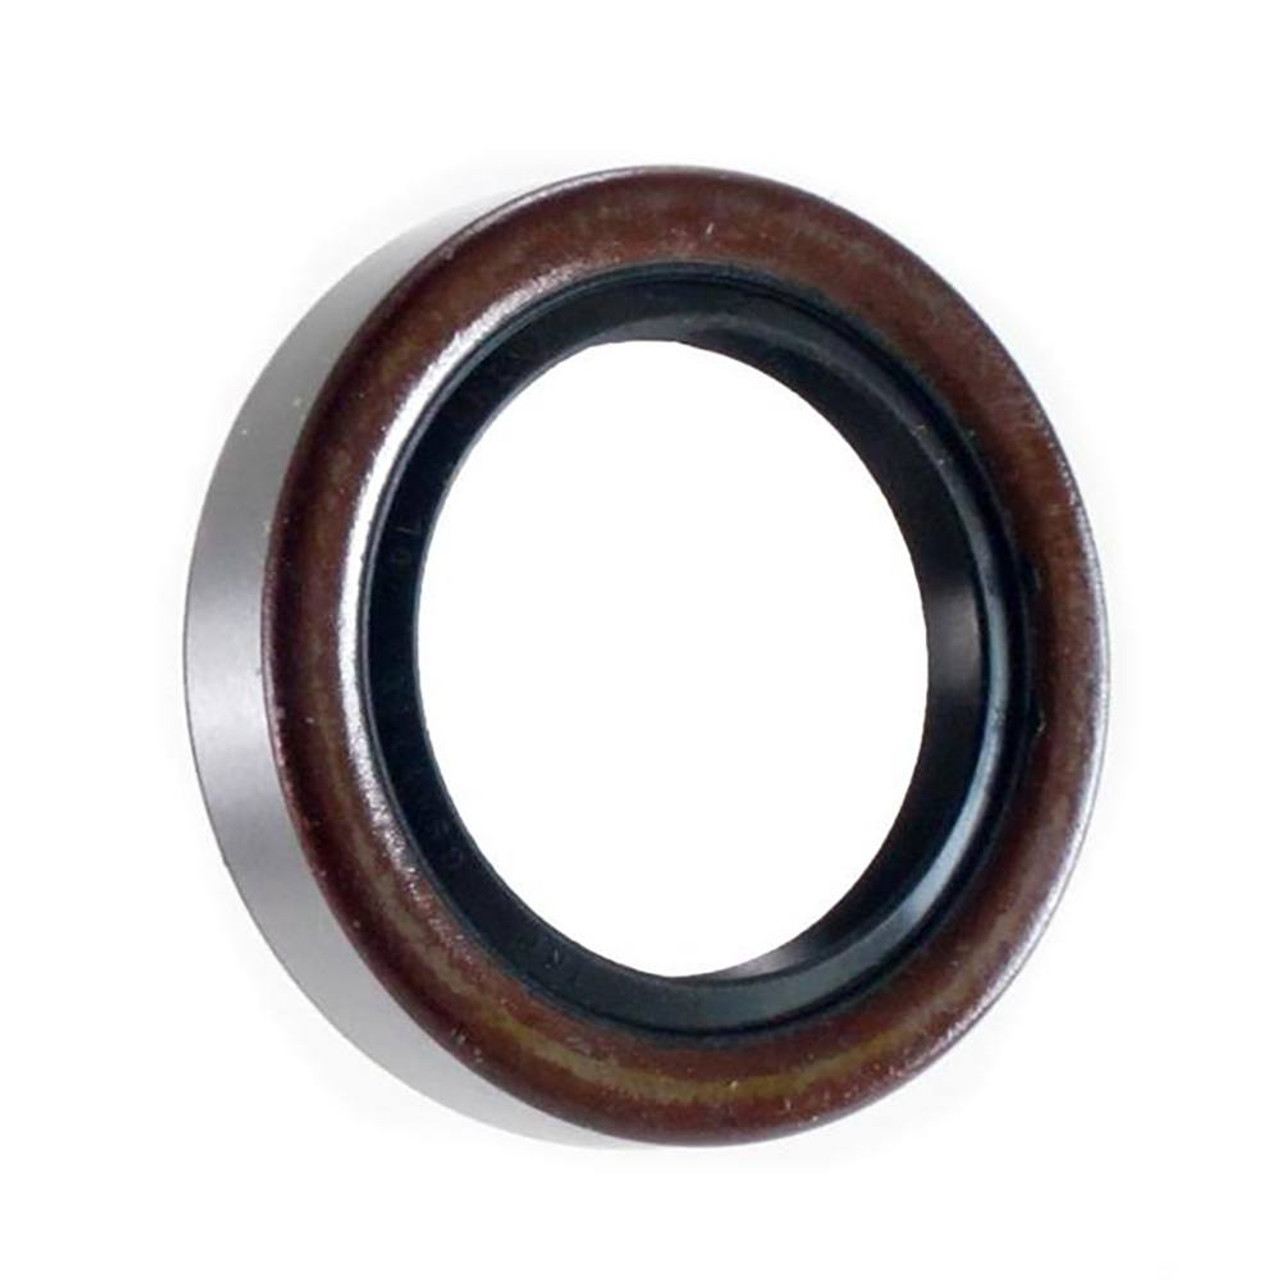 """1.719"""" Double Lip Grease Seal - Trailer Hubs - GS-1719DL"""